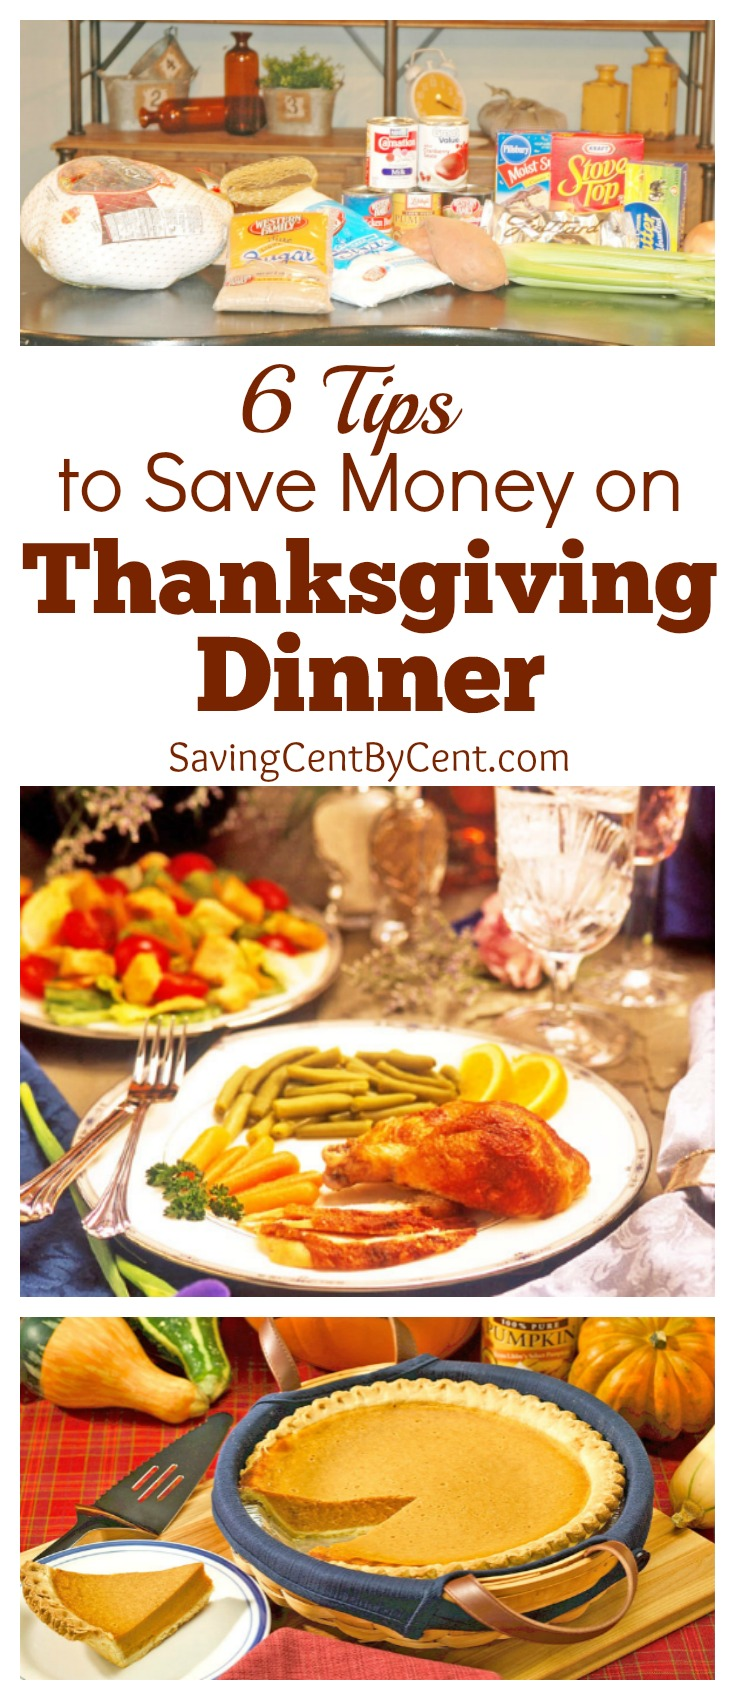 6 Tips to Save Money on Thanksgiving Dinner